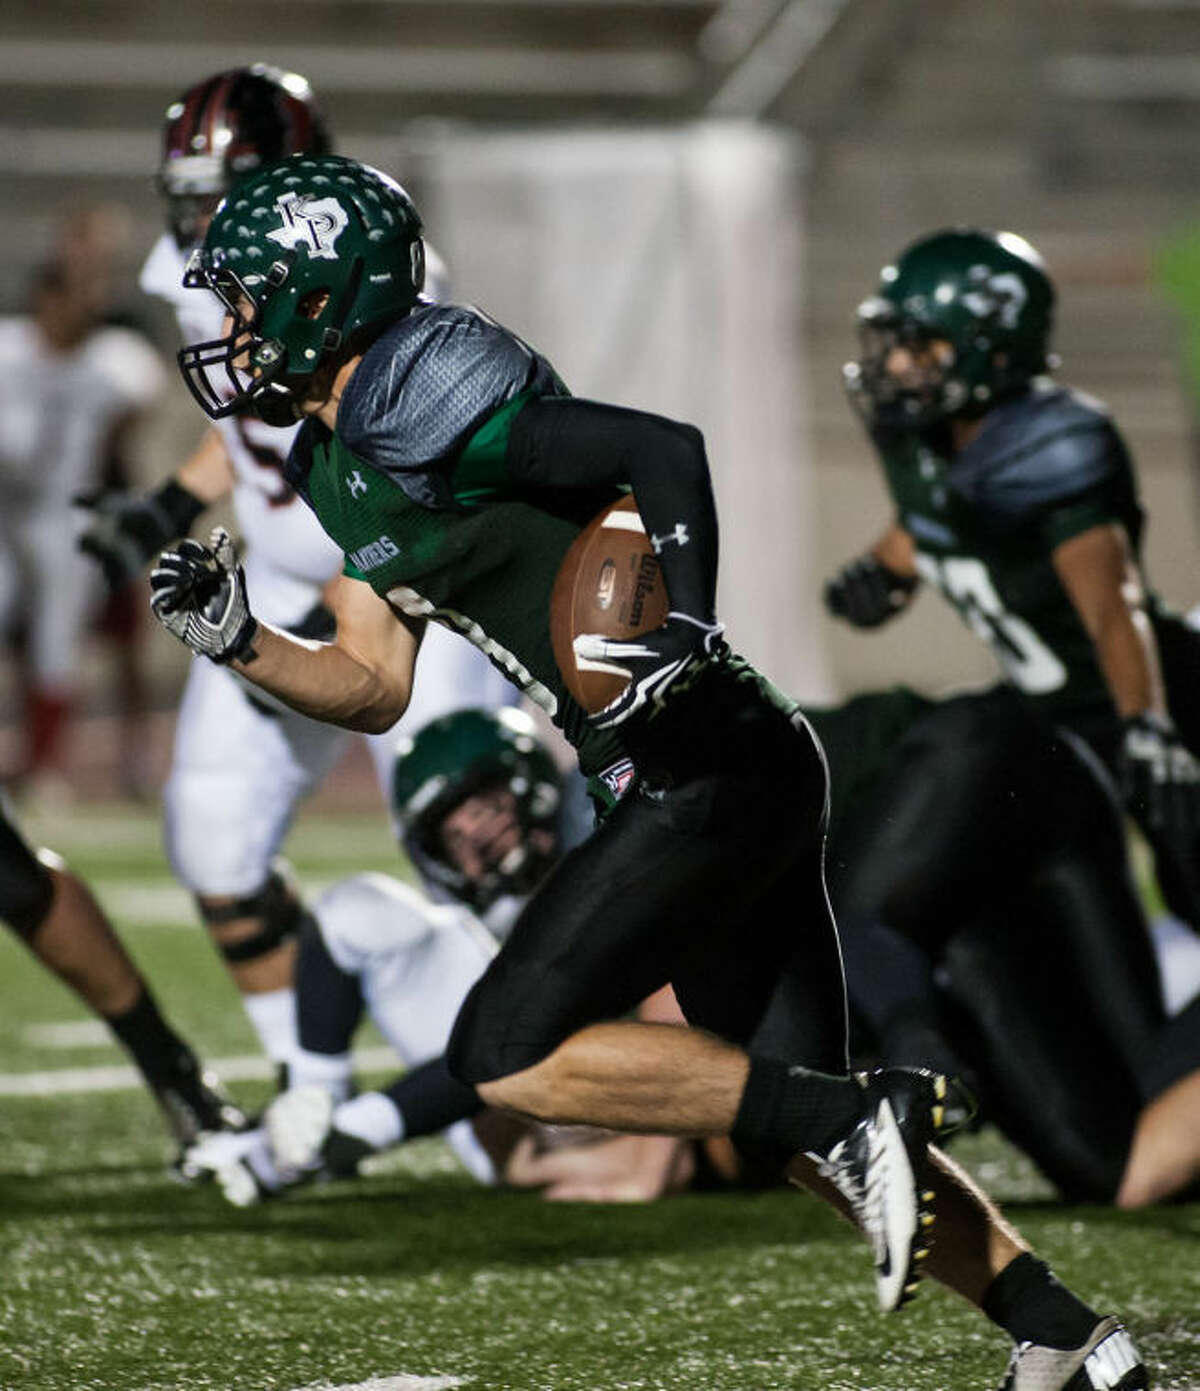 Kingwood Park's Caleb Lewallen is one of six players from the area that will play in the Bayou Bowl on Saturday.